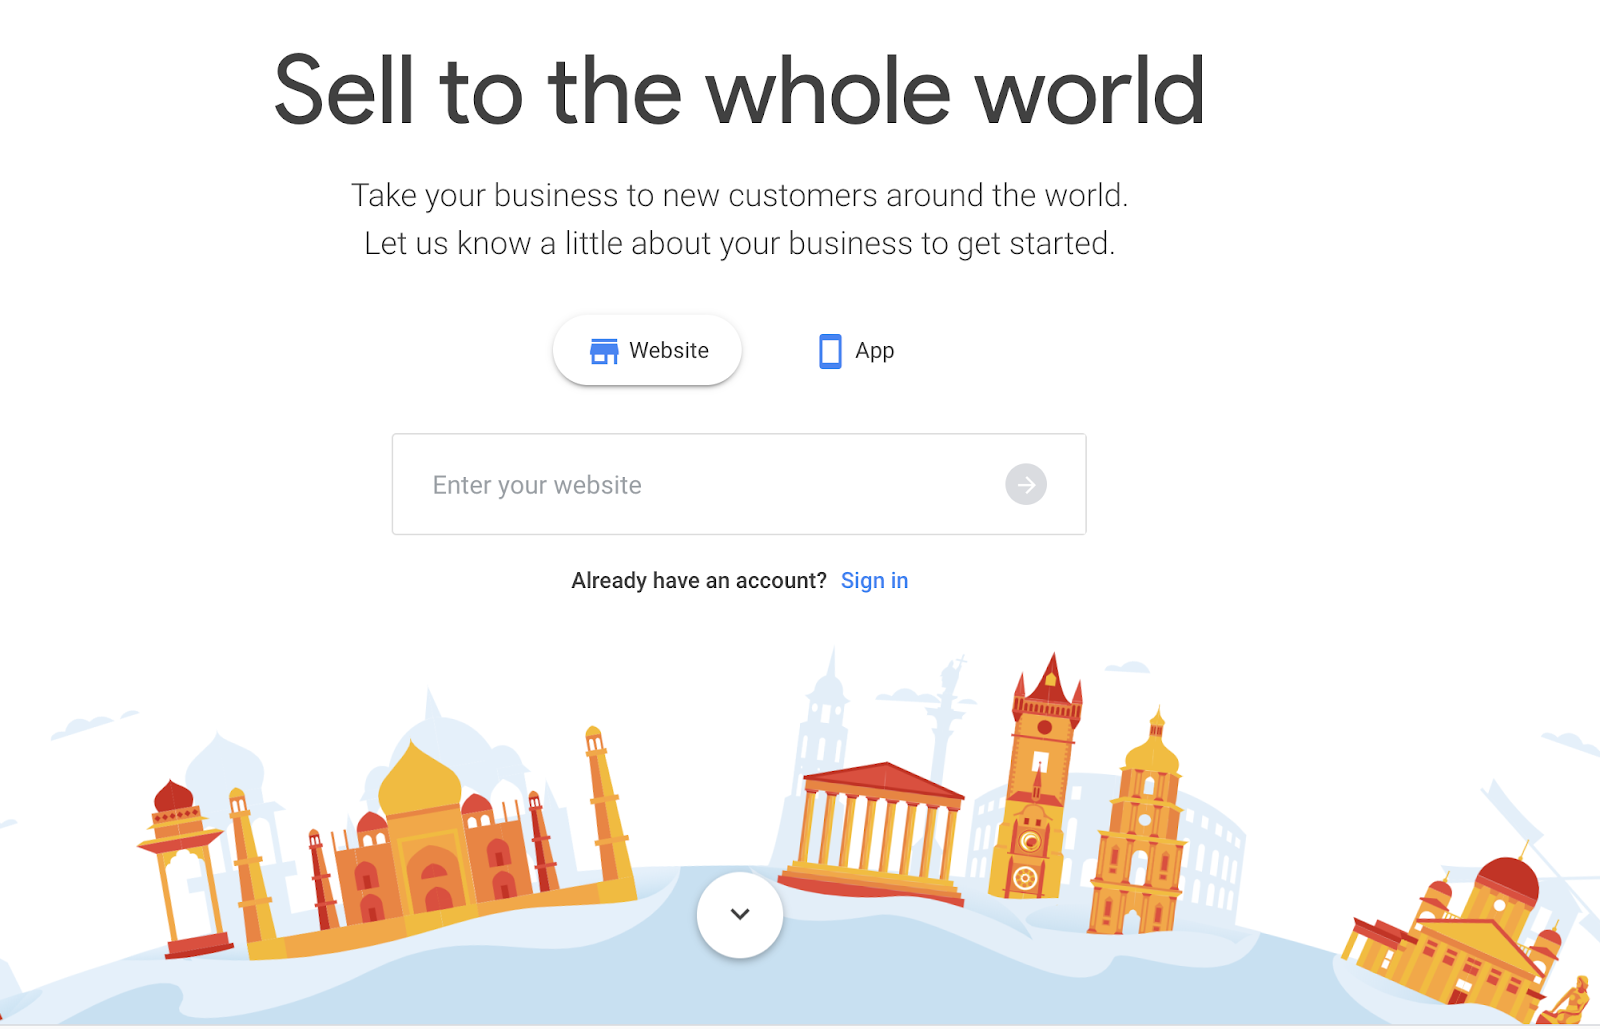 Google Market Finder 5 tips for companies looking to succeed with multilingual ppc campaigns - how google tools can help you export internationally 5 tips for companies looking to succeed with multilingual PPC campaigns blog